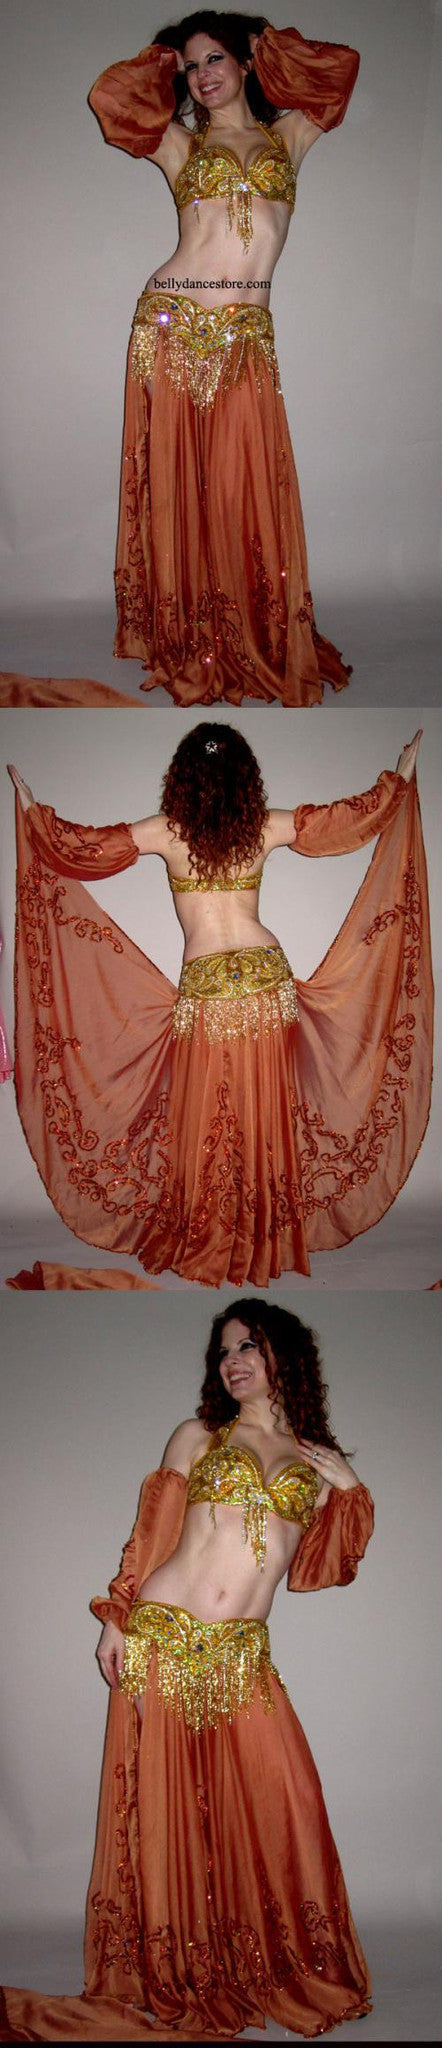 Arabesque Skirt/Veil Set